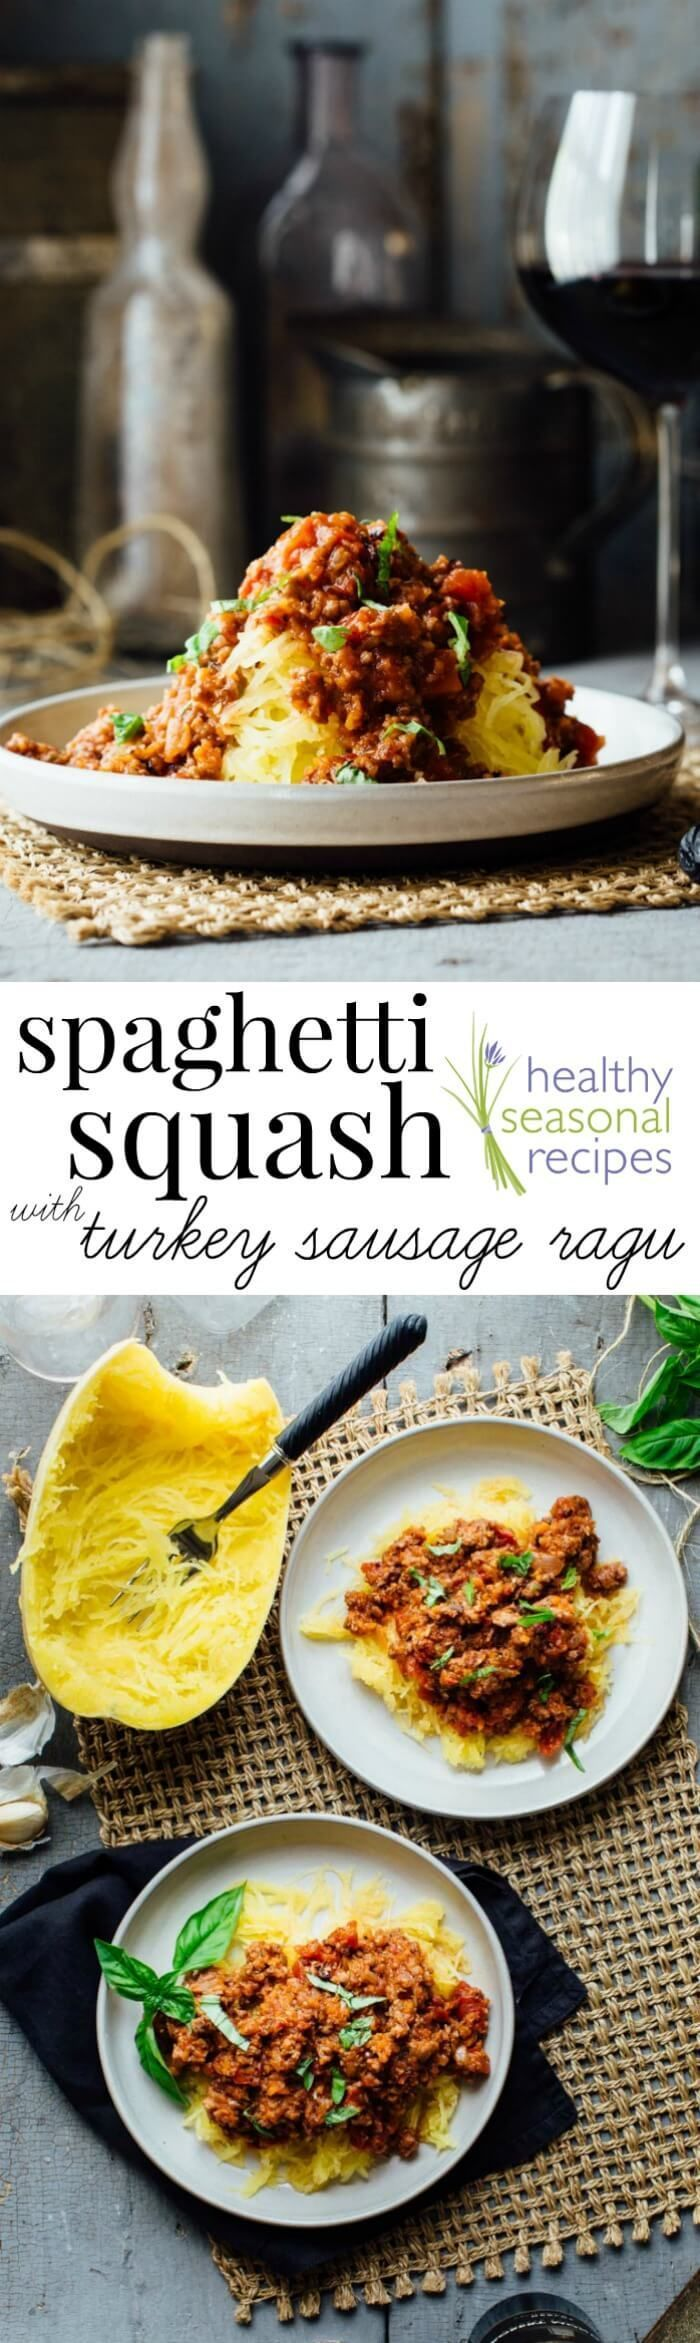 Lower-carb Spaghetti Squash with Turkey Sausage Ragu made with tons of veggies! It is ready in just 50 minutes and is gluten free. @healthyseasonal